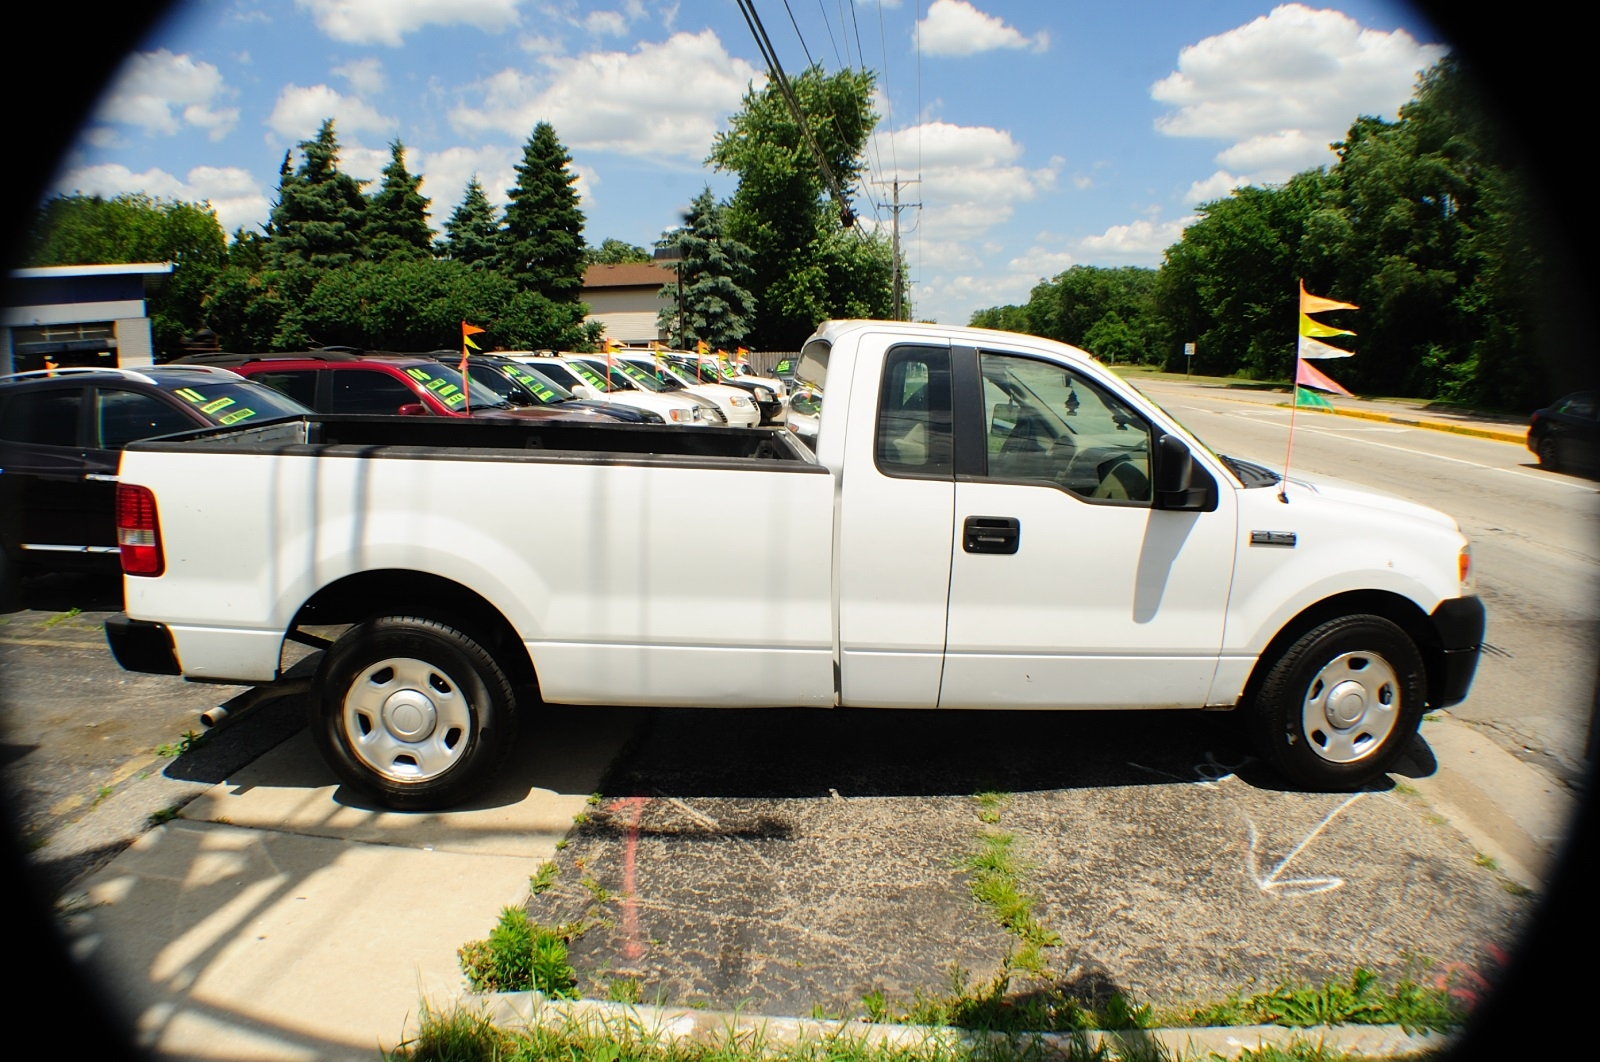 2006 Ford F150 White Ext Cab 4x2 Used Pickup Truck Sale Downers Grove Carpentersville Cicero Oak Park